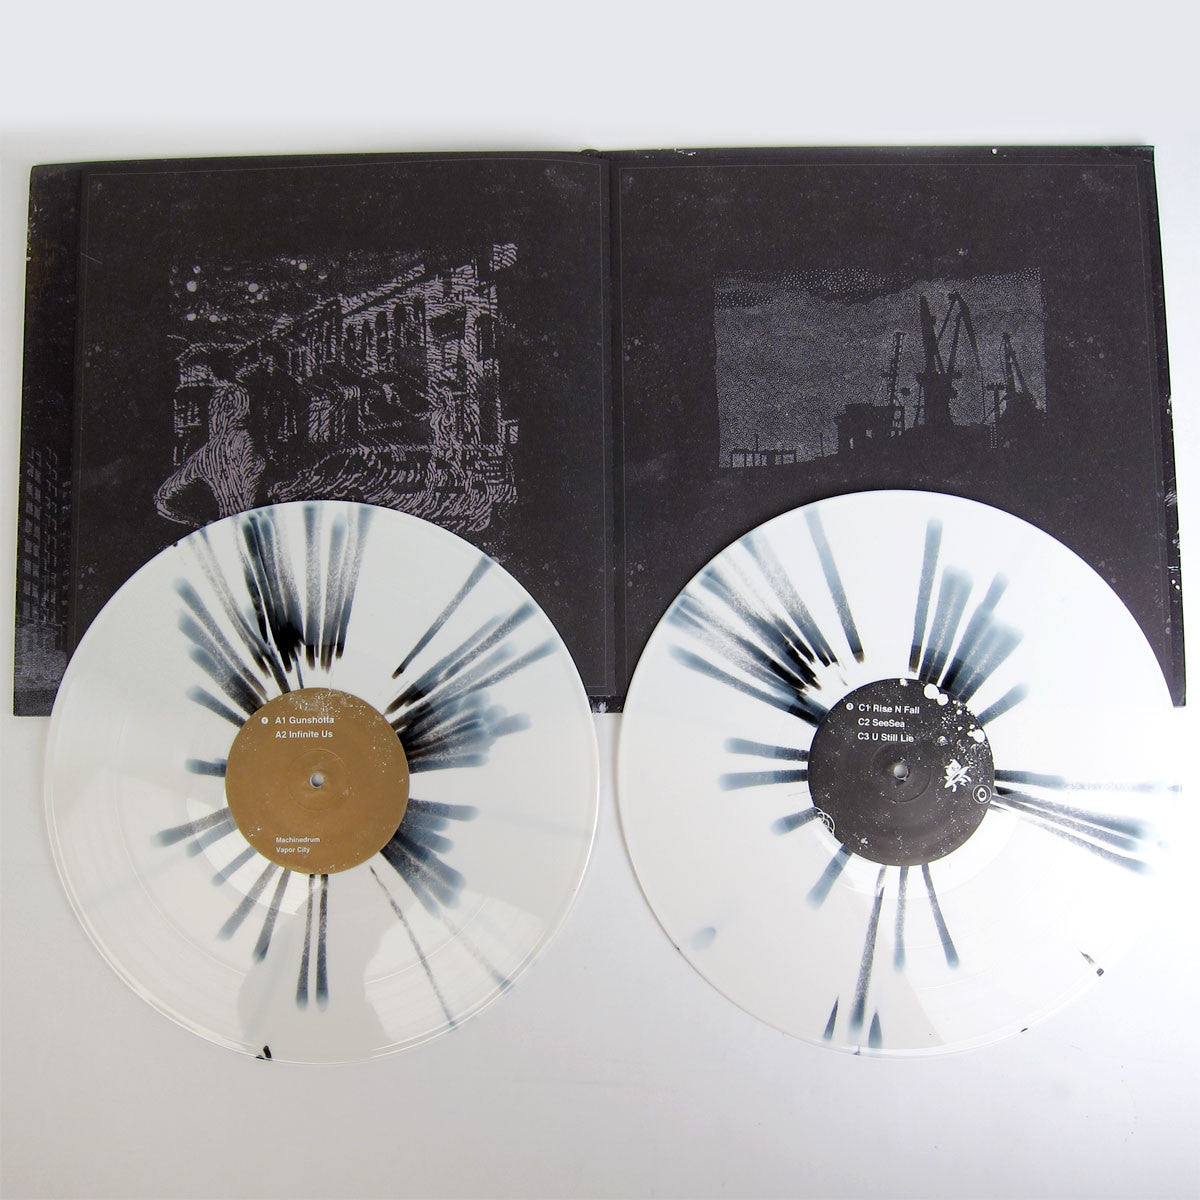 Machinedrum: Vapor City (Free MP3) 2LP gatefold